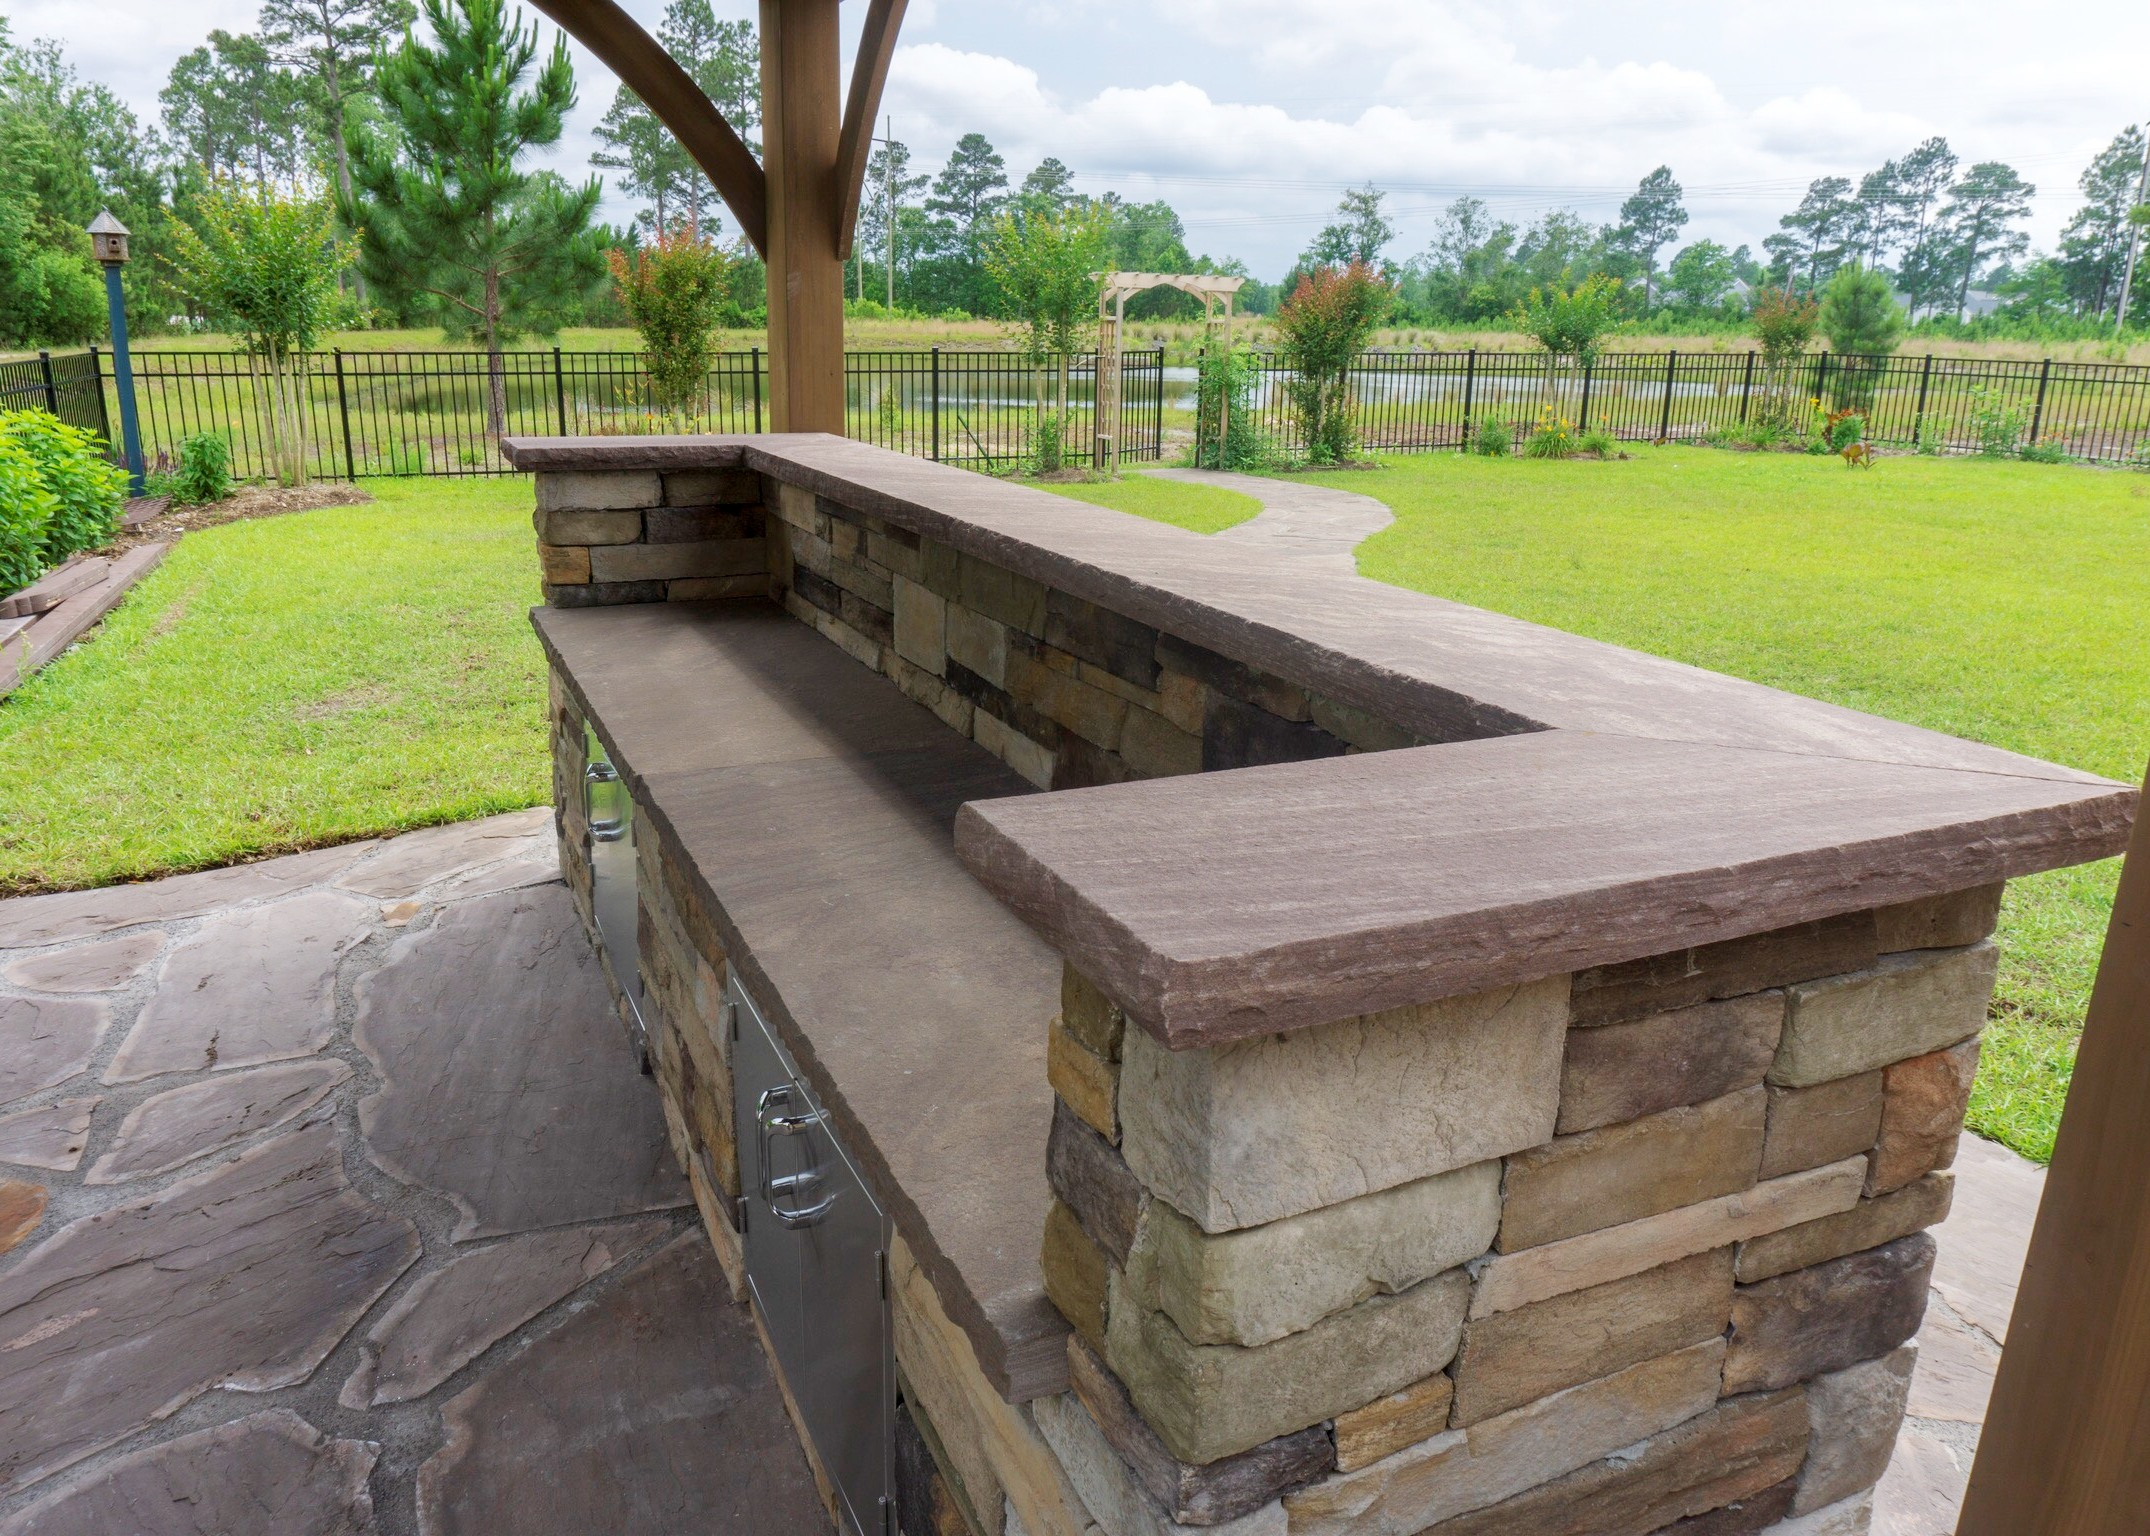 stone bar grill cabinet in a backyard garden for outdoor living